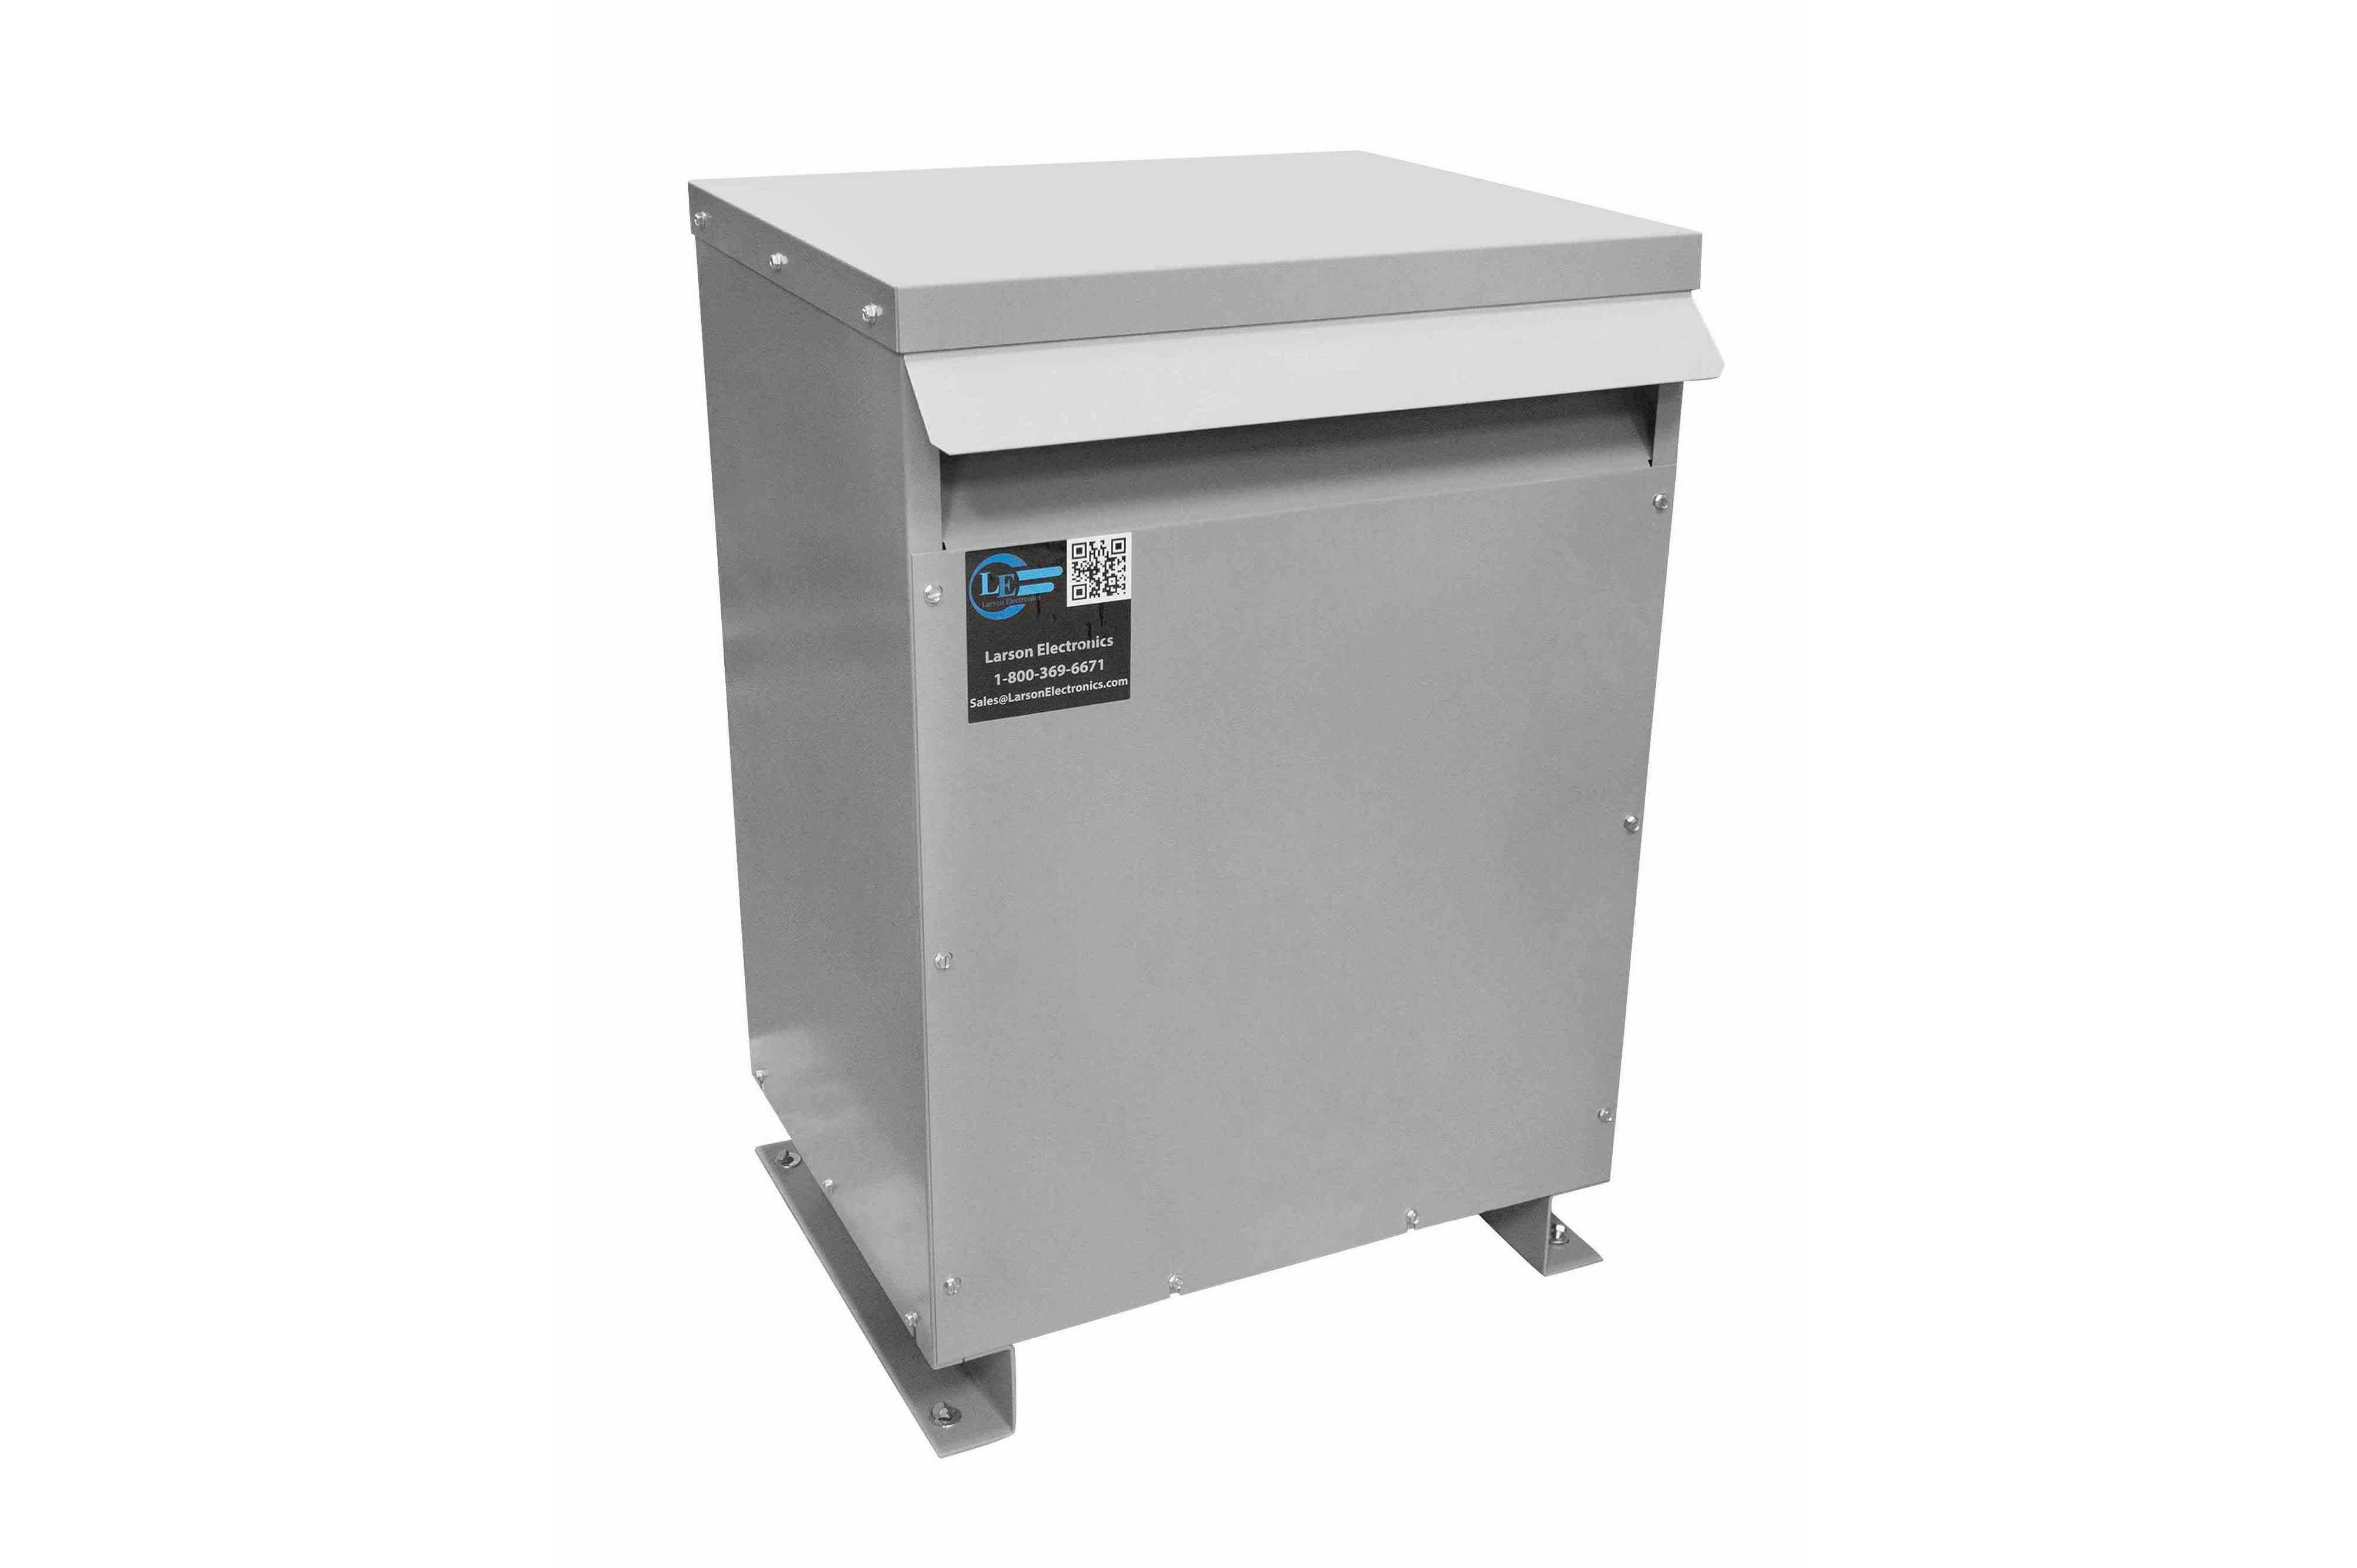 600 kVA 3PH Isolation Transformer, 440V Delta Primary, 240 Delta Secondary, N3R, Ventilated, 60 Hz